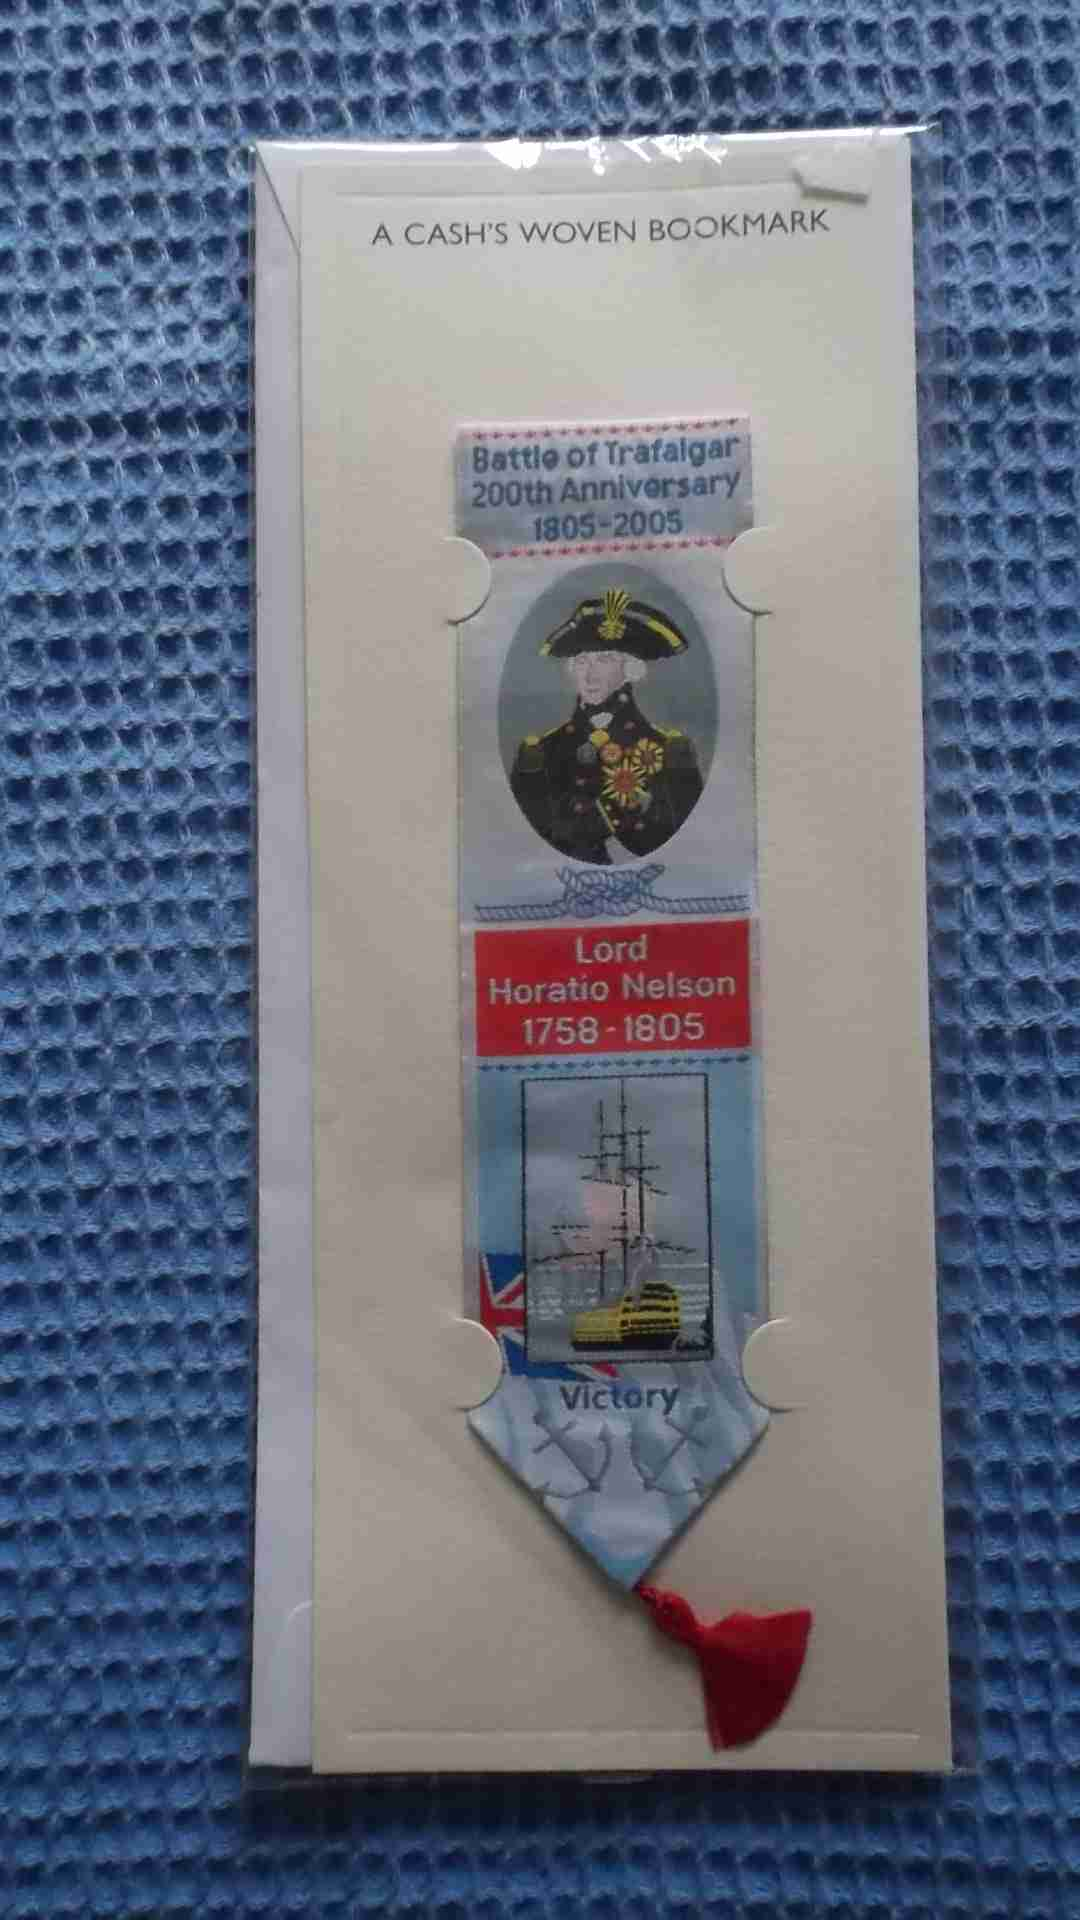 MATERIAL BOOKMARK COMMEMORATING THE 200TH ANNIVERSARY OF THE BATTLE OF TRAFALGAR